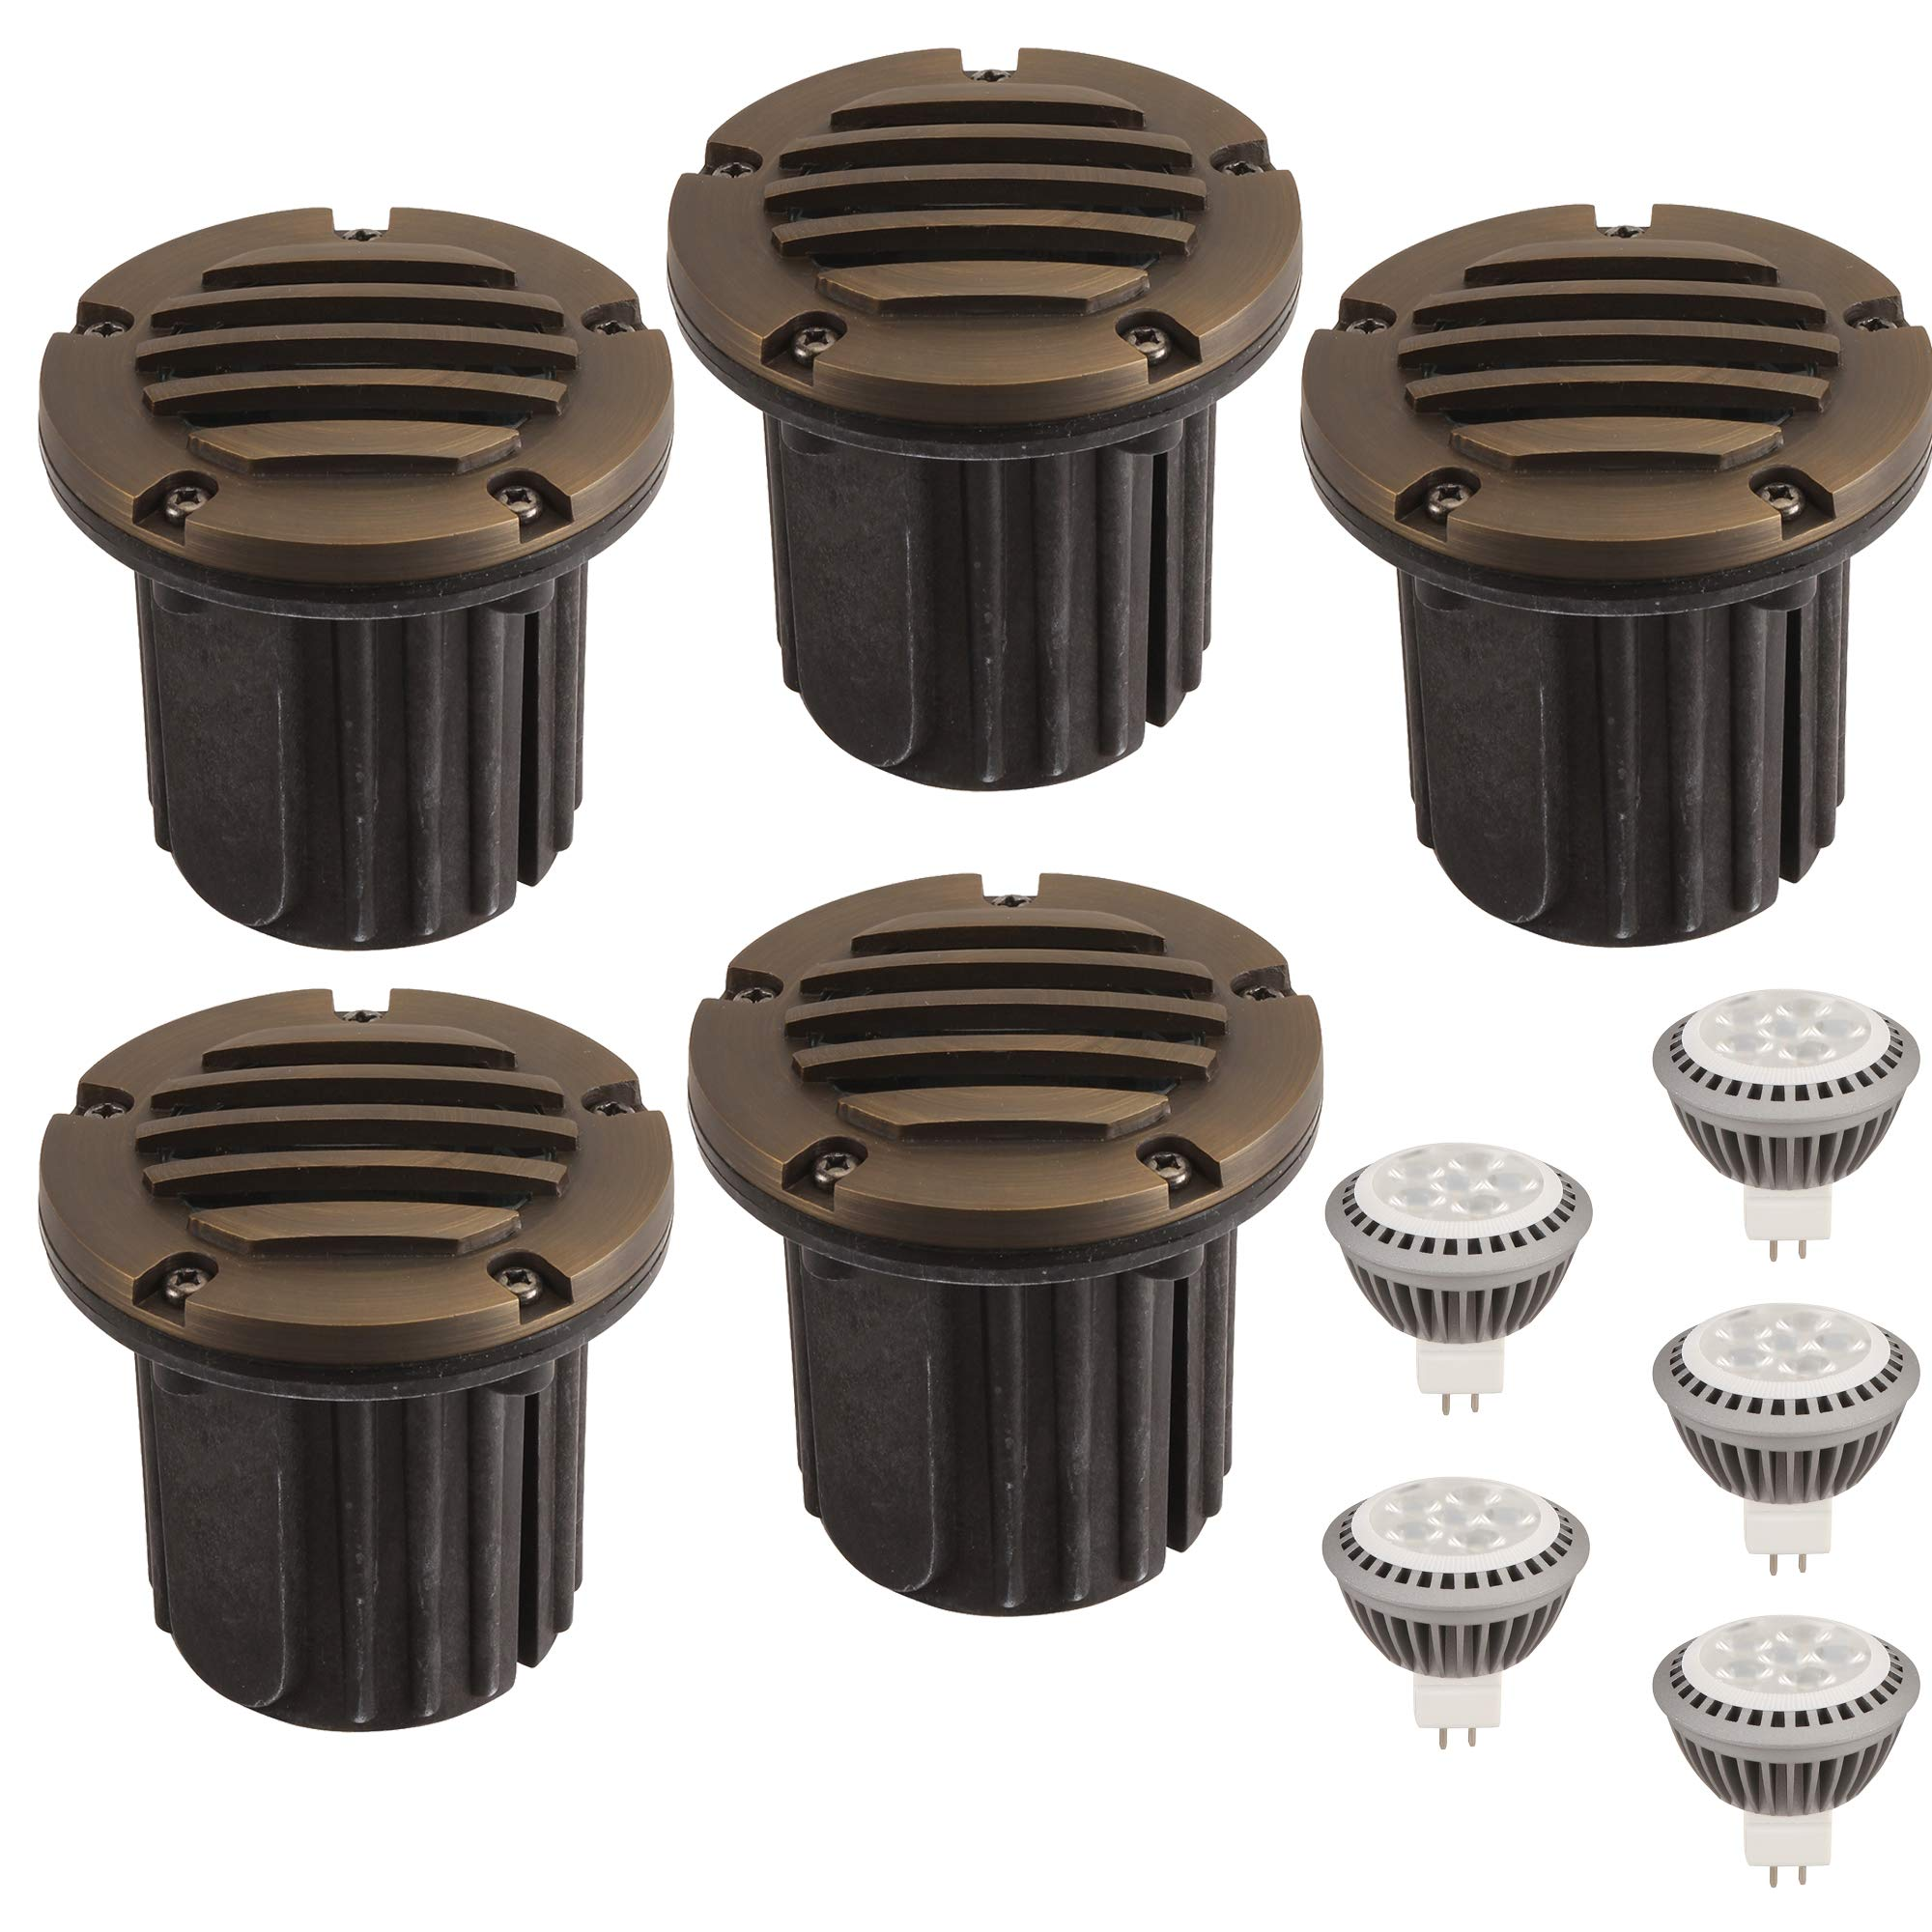 LFU Pack of 5 Solid Brass Constructed Well/In Ground Lights with 5 LED MR16 3W Warm White Bulbs (Model LF3002AB Volos). Low Voltage.